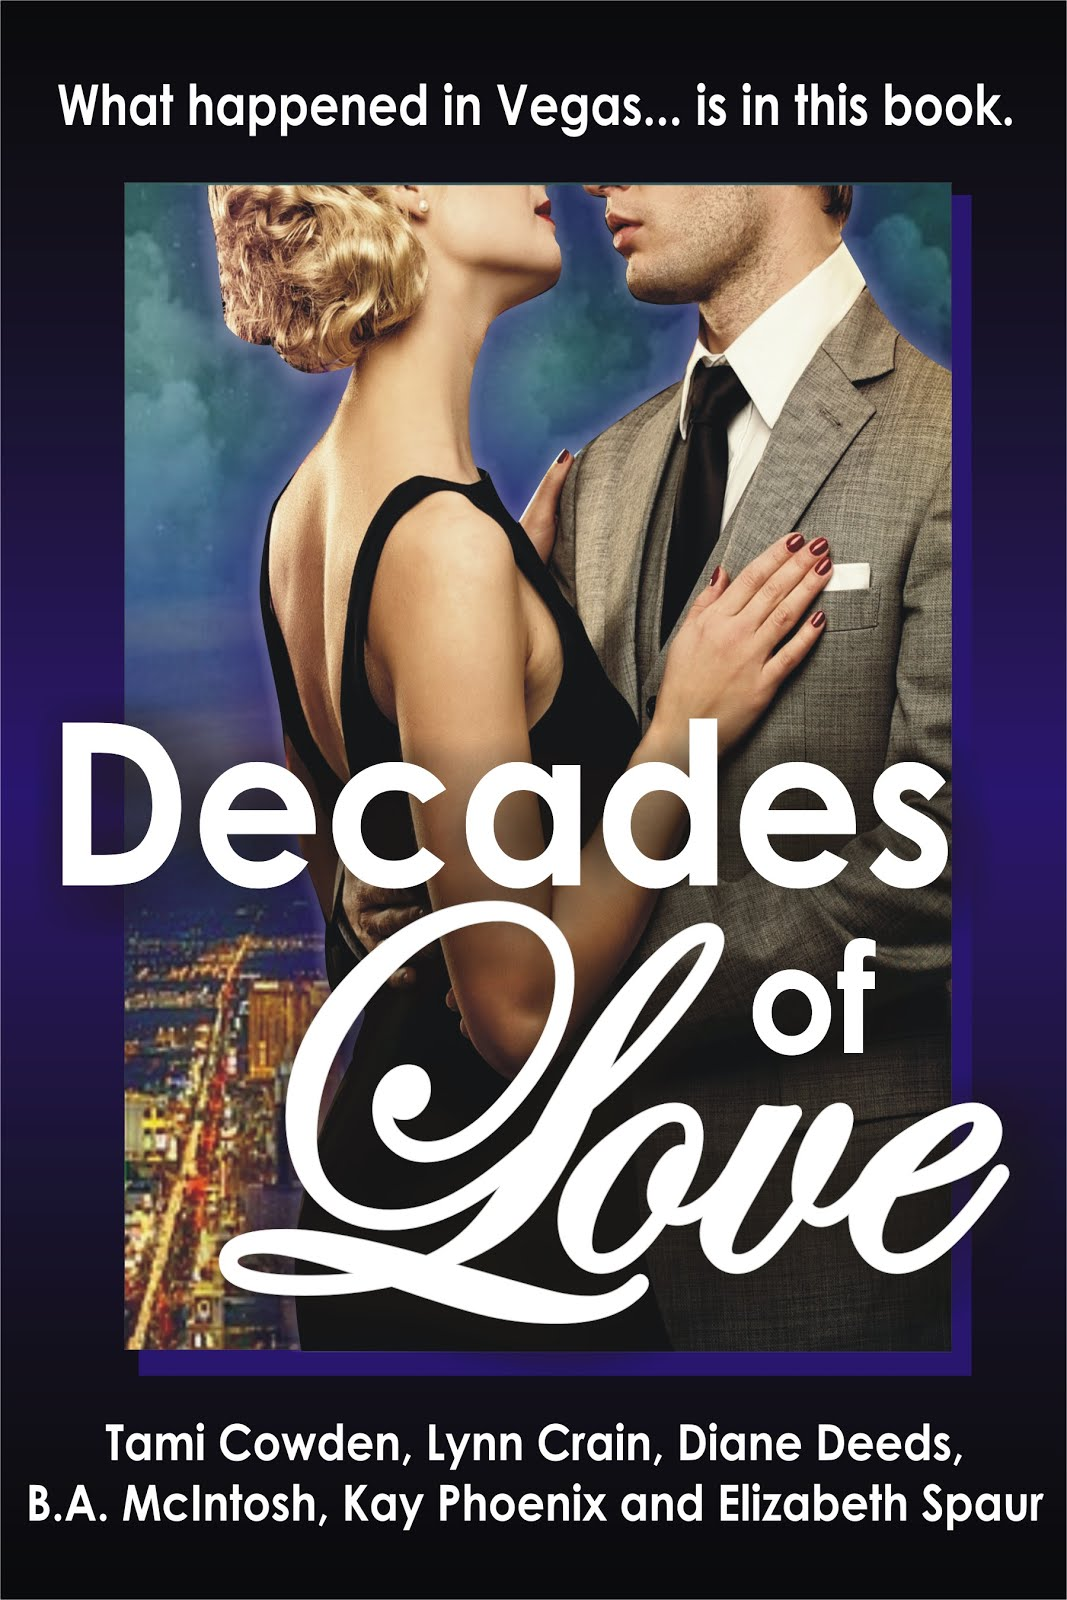 Decades of Love